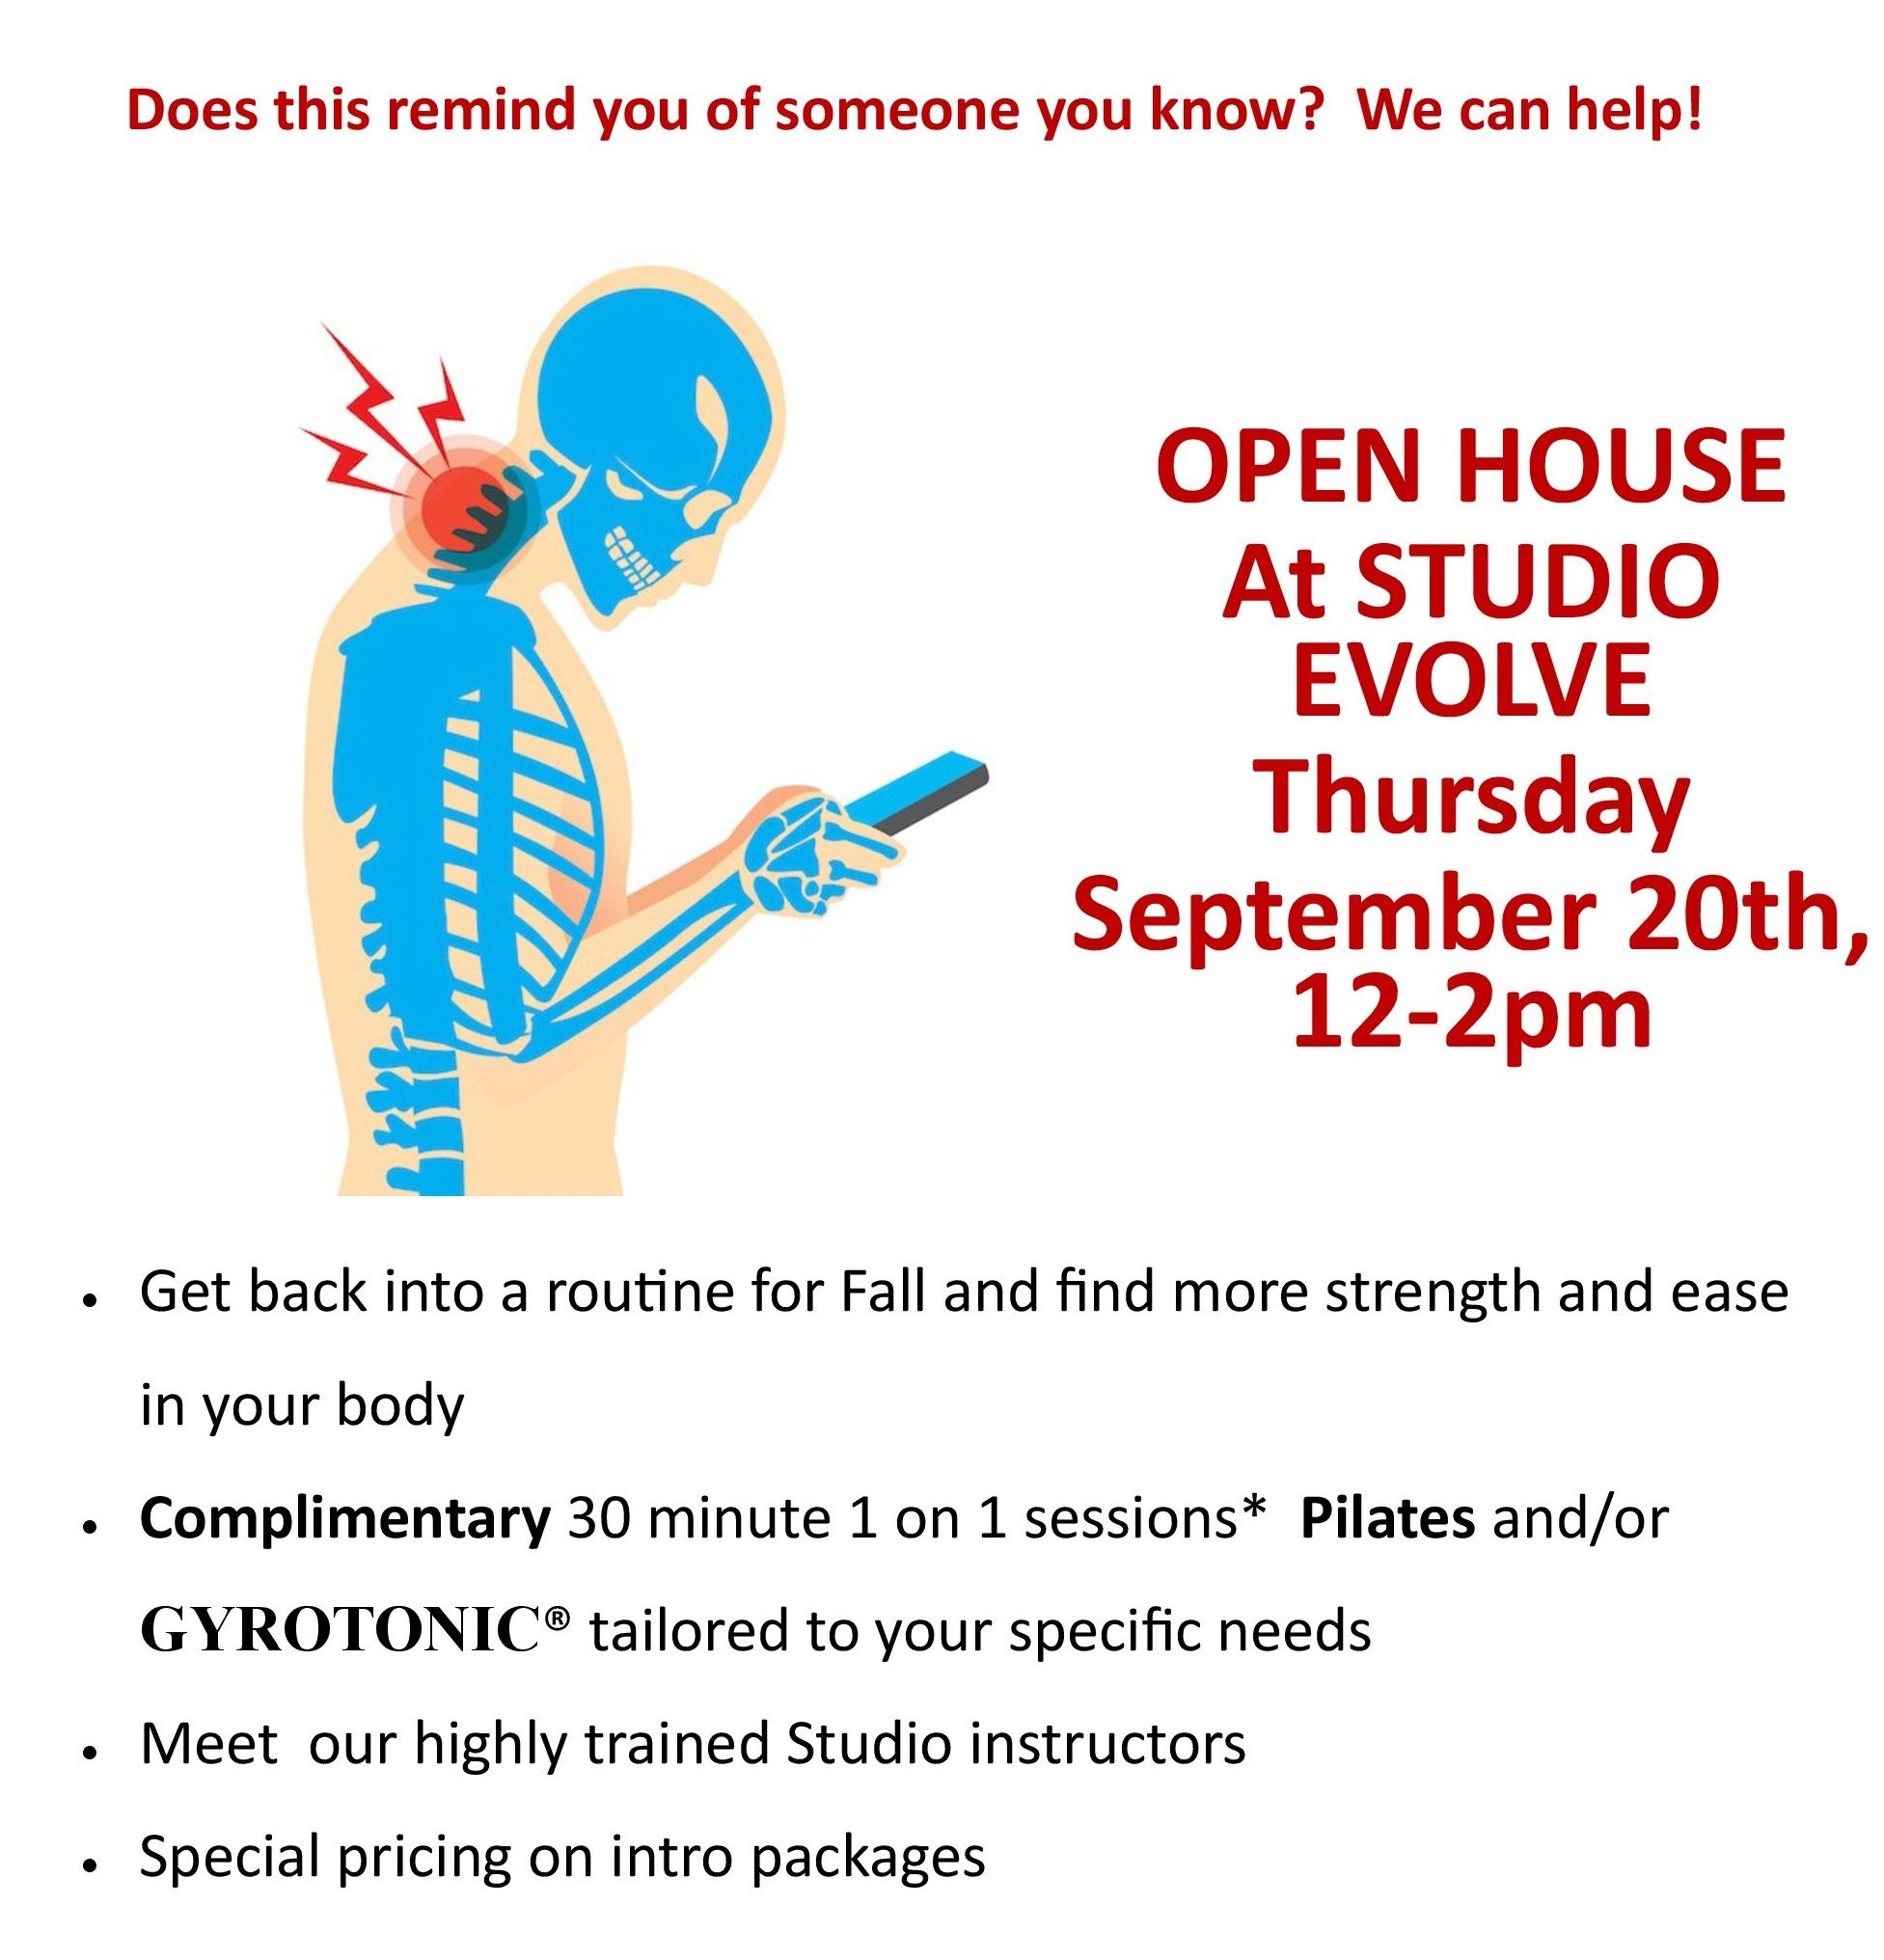 Fall-Open-house-studio-evolve-pilates-gyrotonic-seattle